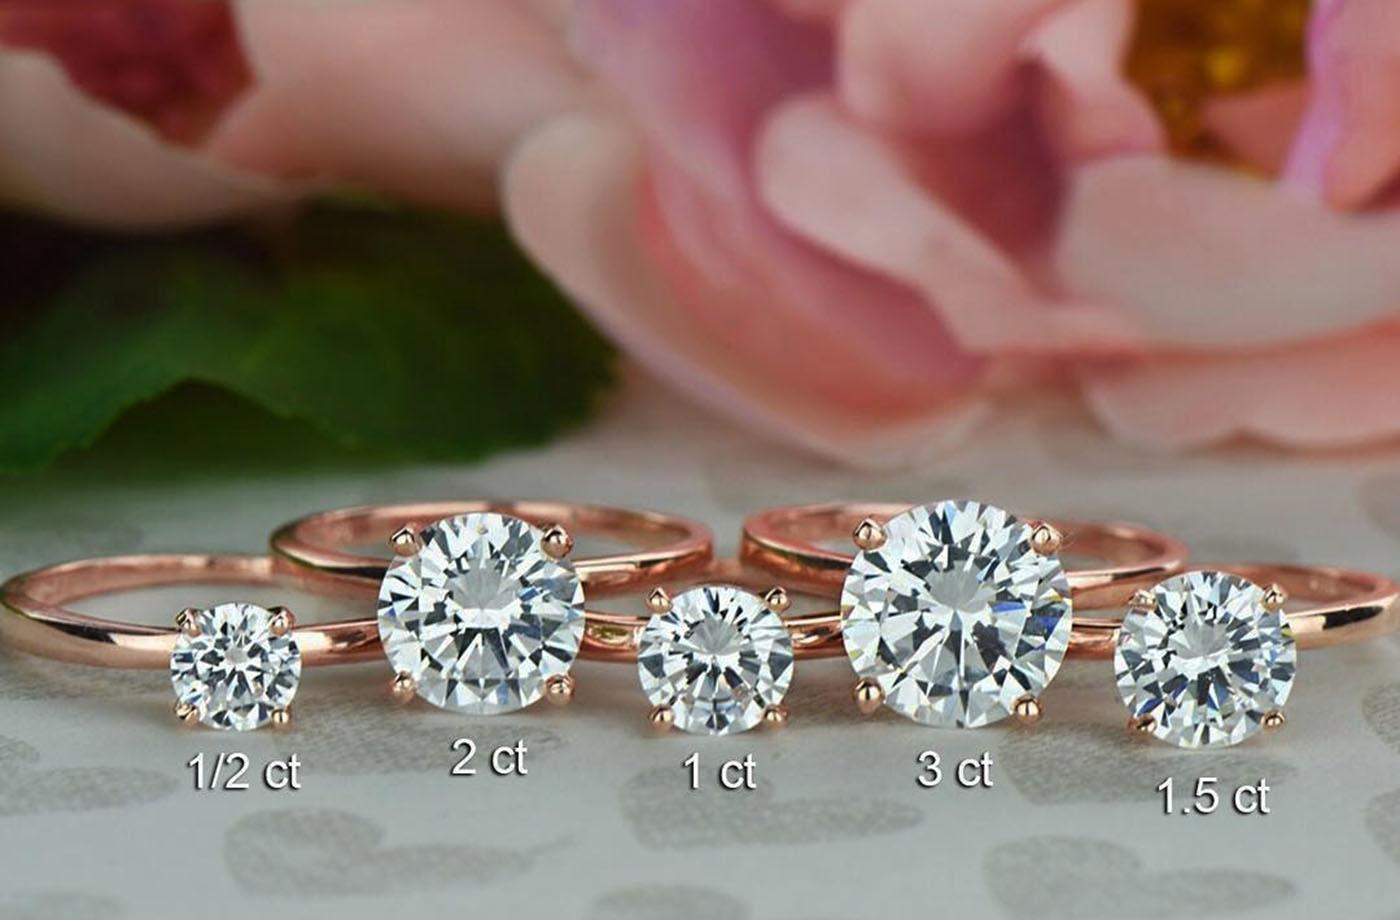 30 Round Engagement Rings Timeless Classic And Not Only Oh So Perfect Proposal